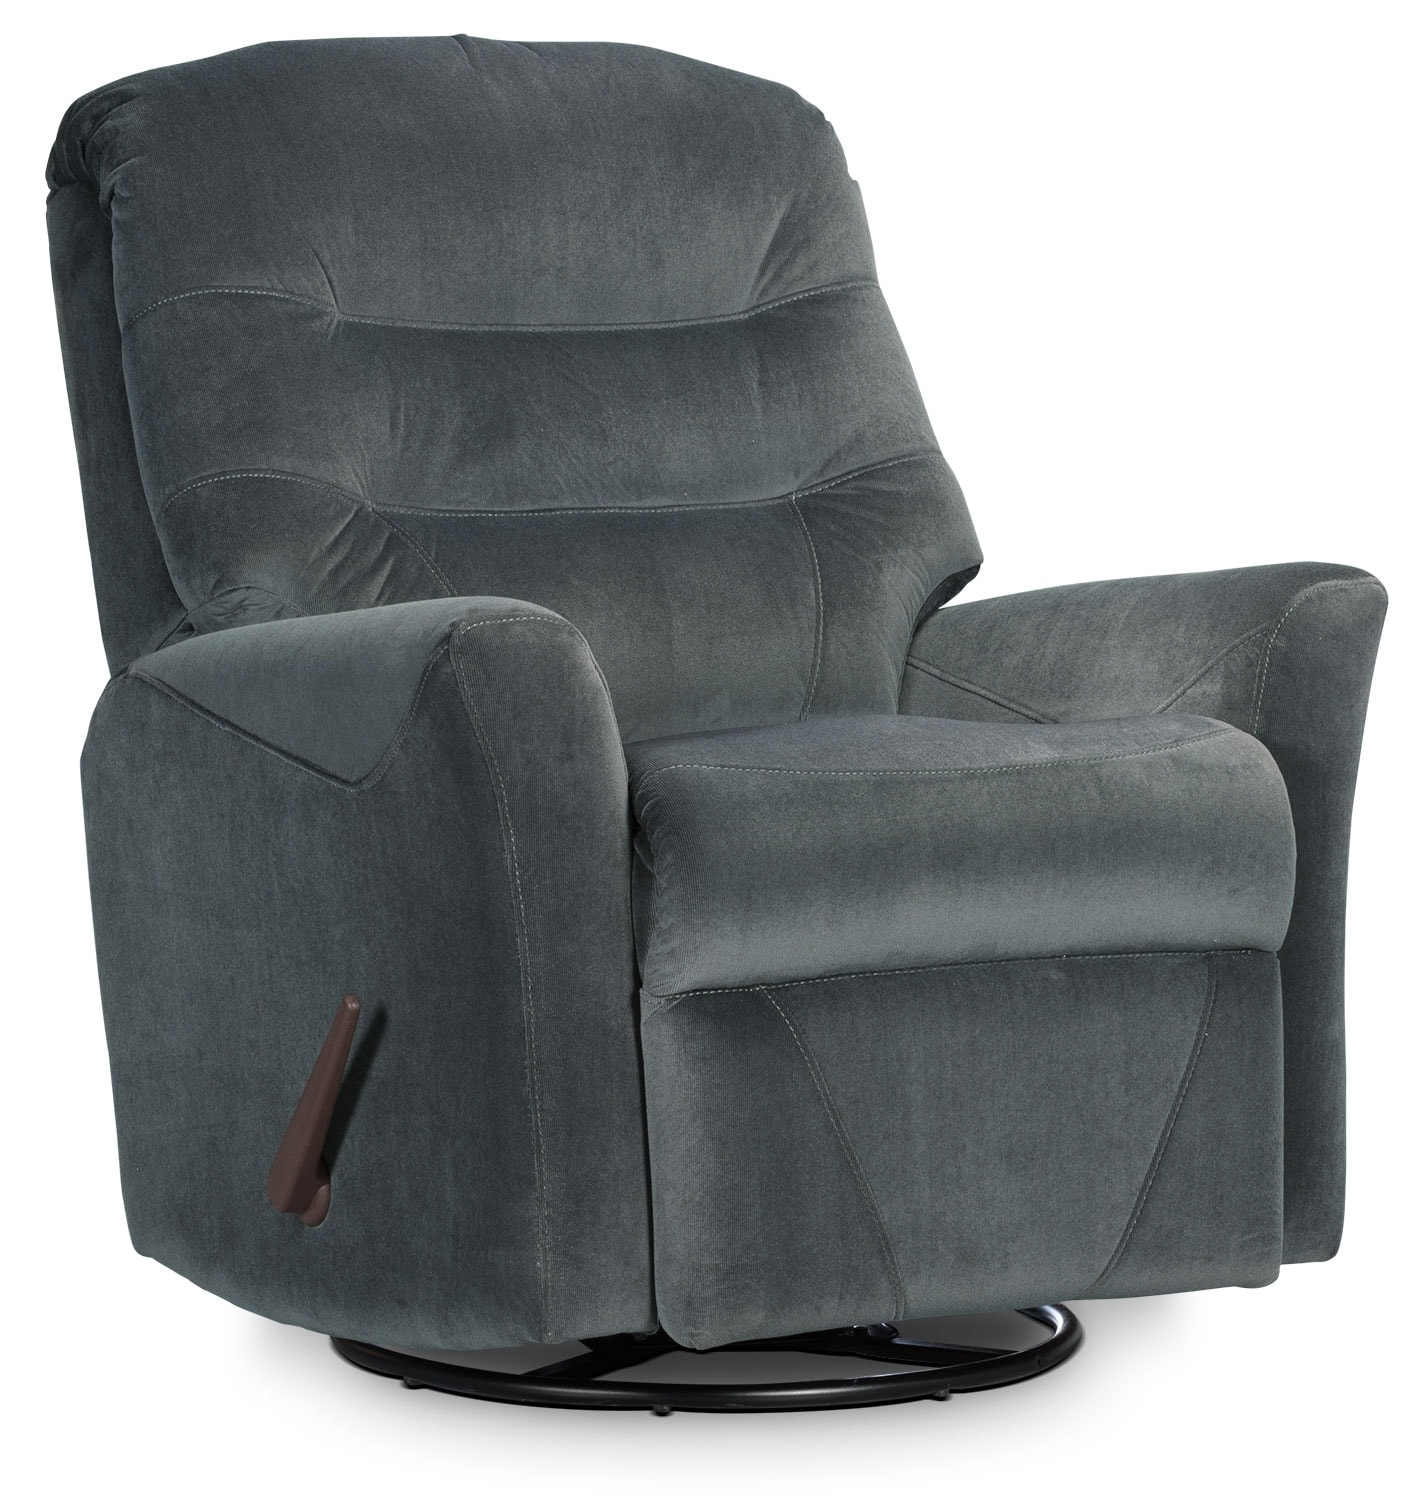 Living Room Furniture - Designed2B Recliner 4560 Microsuede Swivel Glider Recliner - Graphite